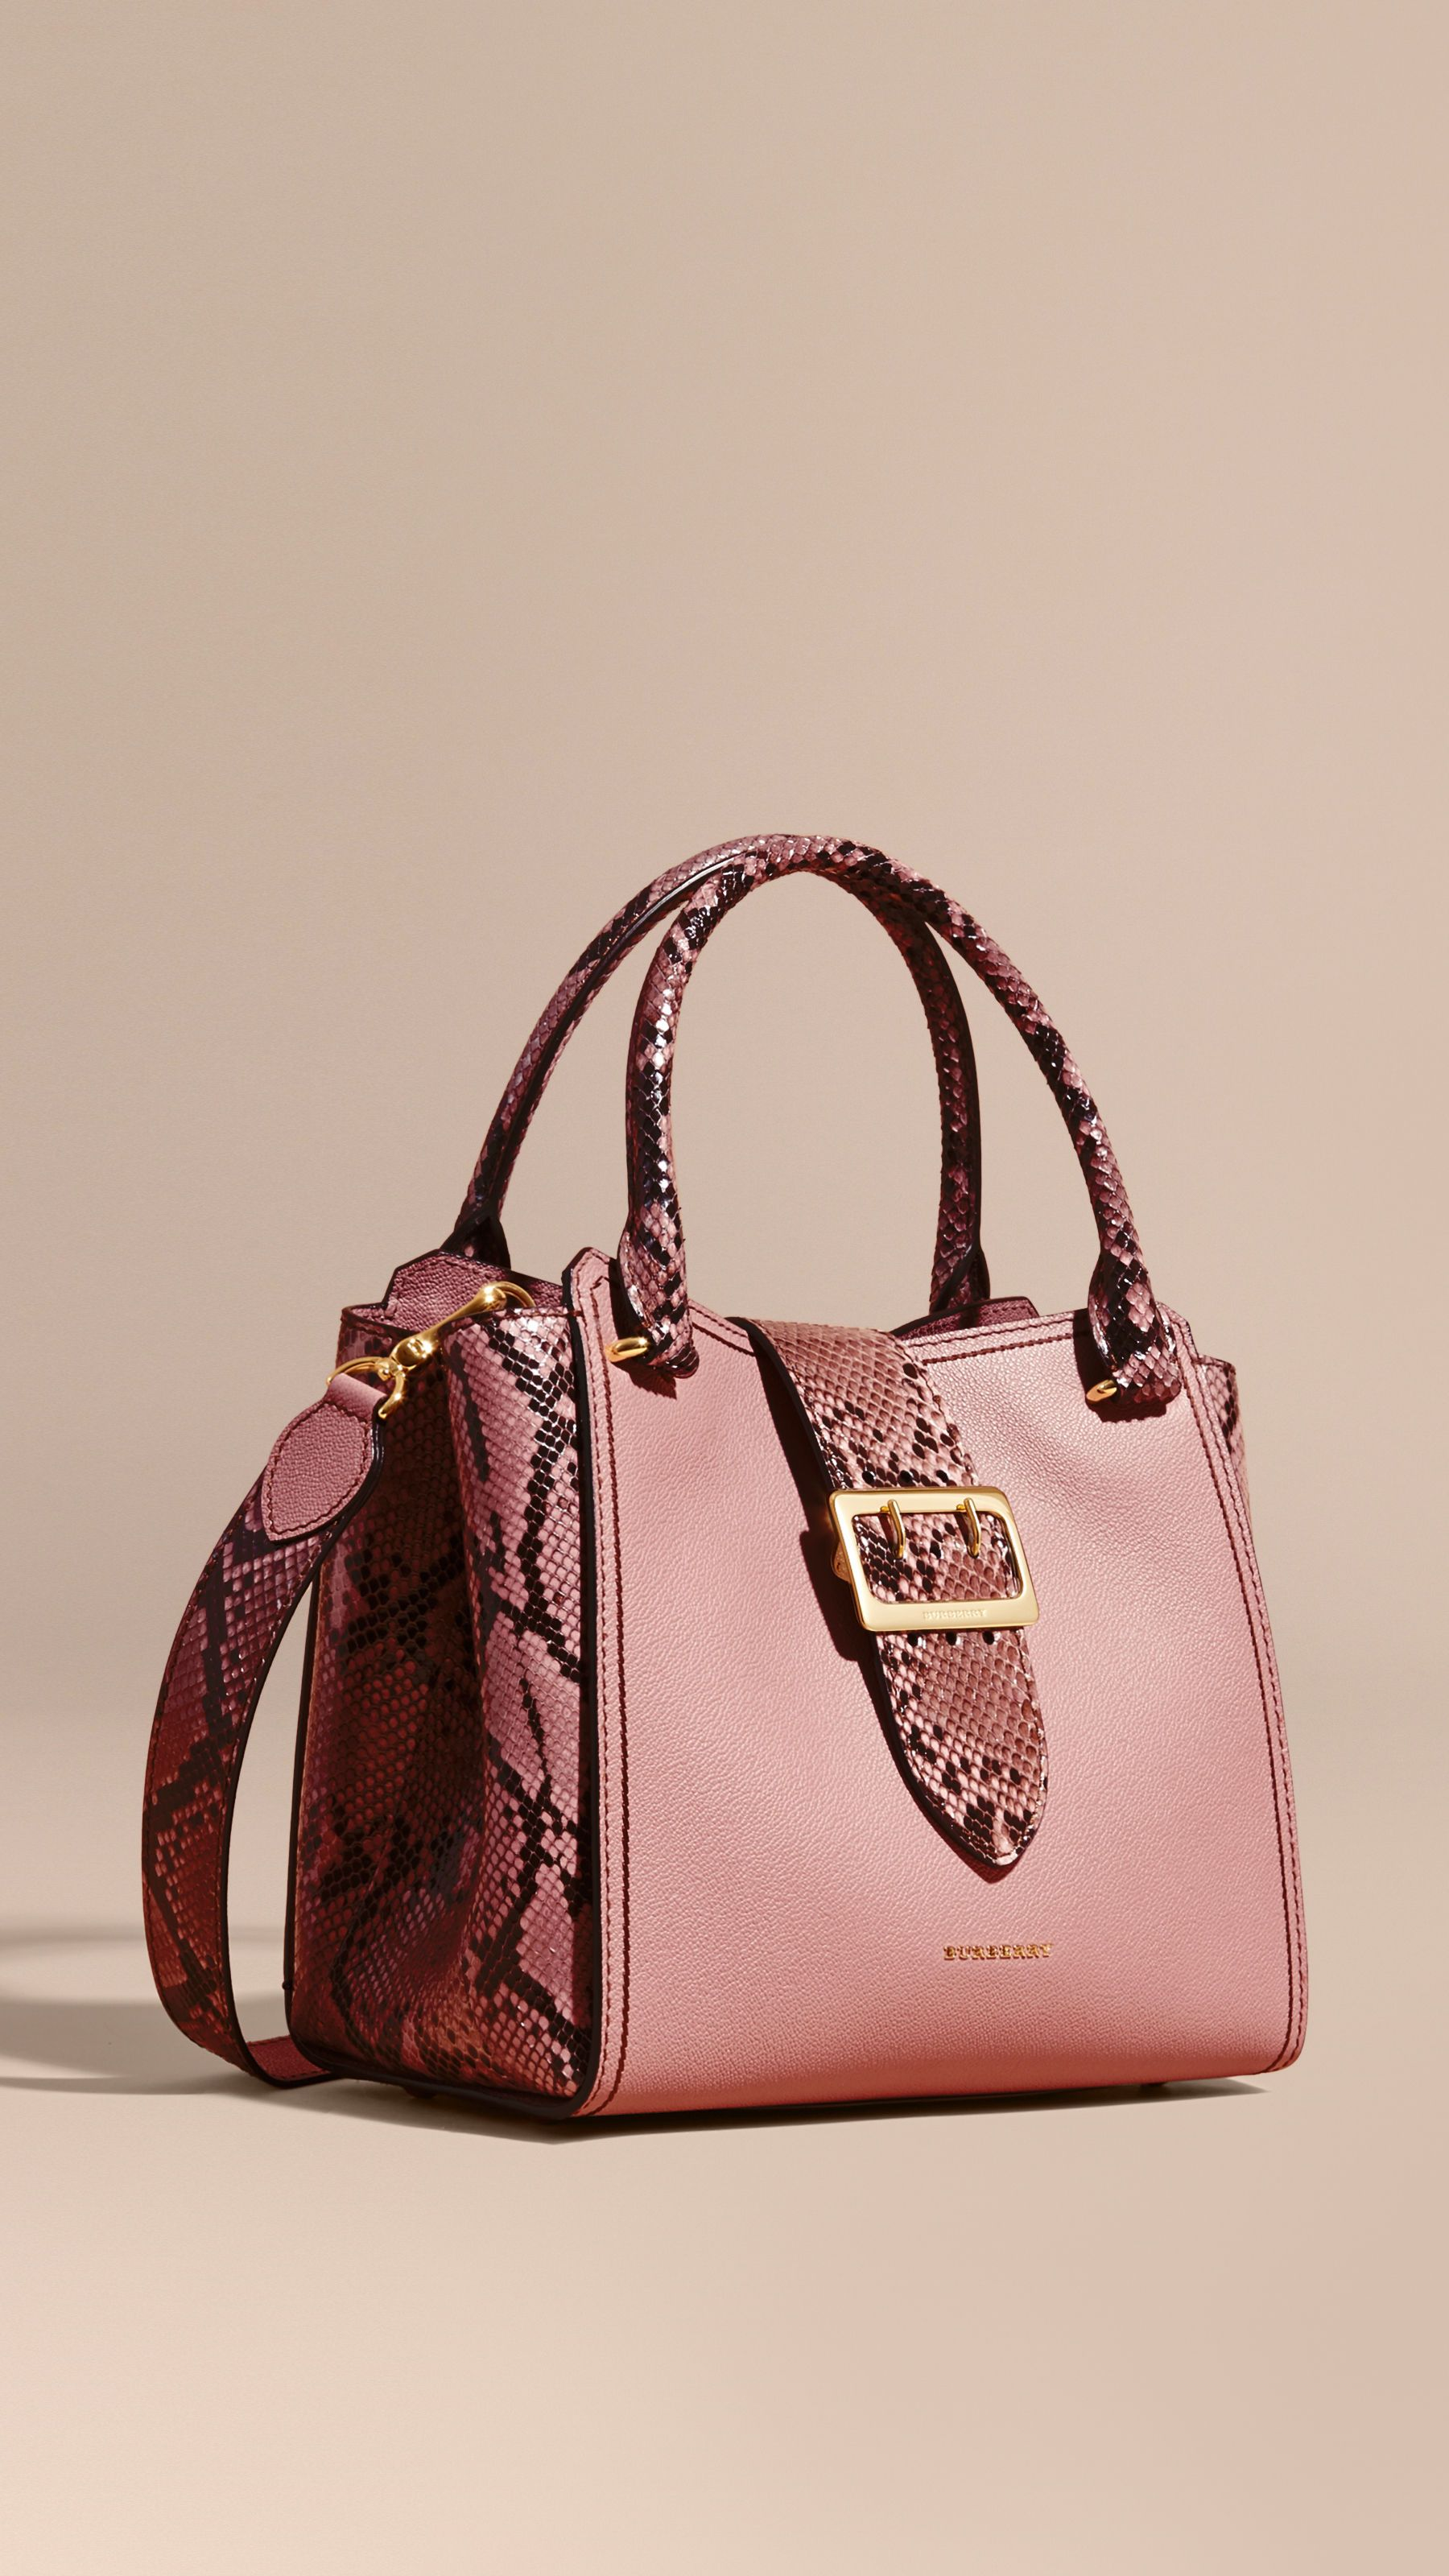 1349b4af4 The Medium Buckle Tote in Grainy Leather and Python Dusty Pink | Burberry